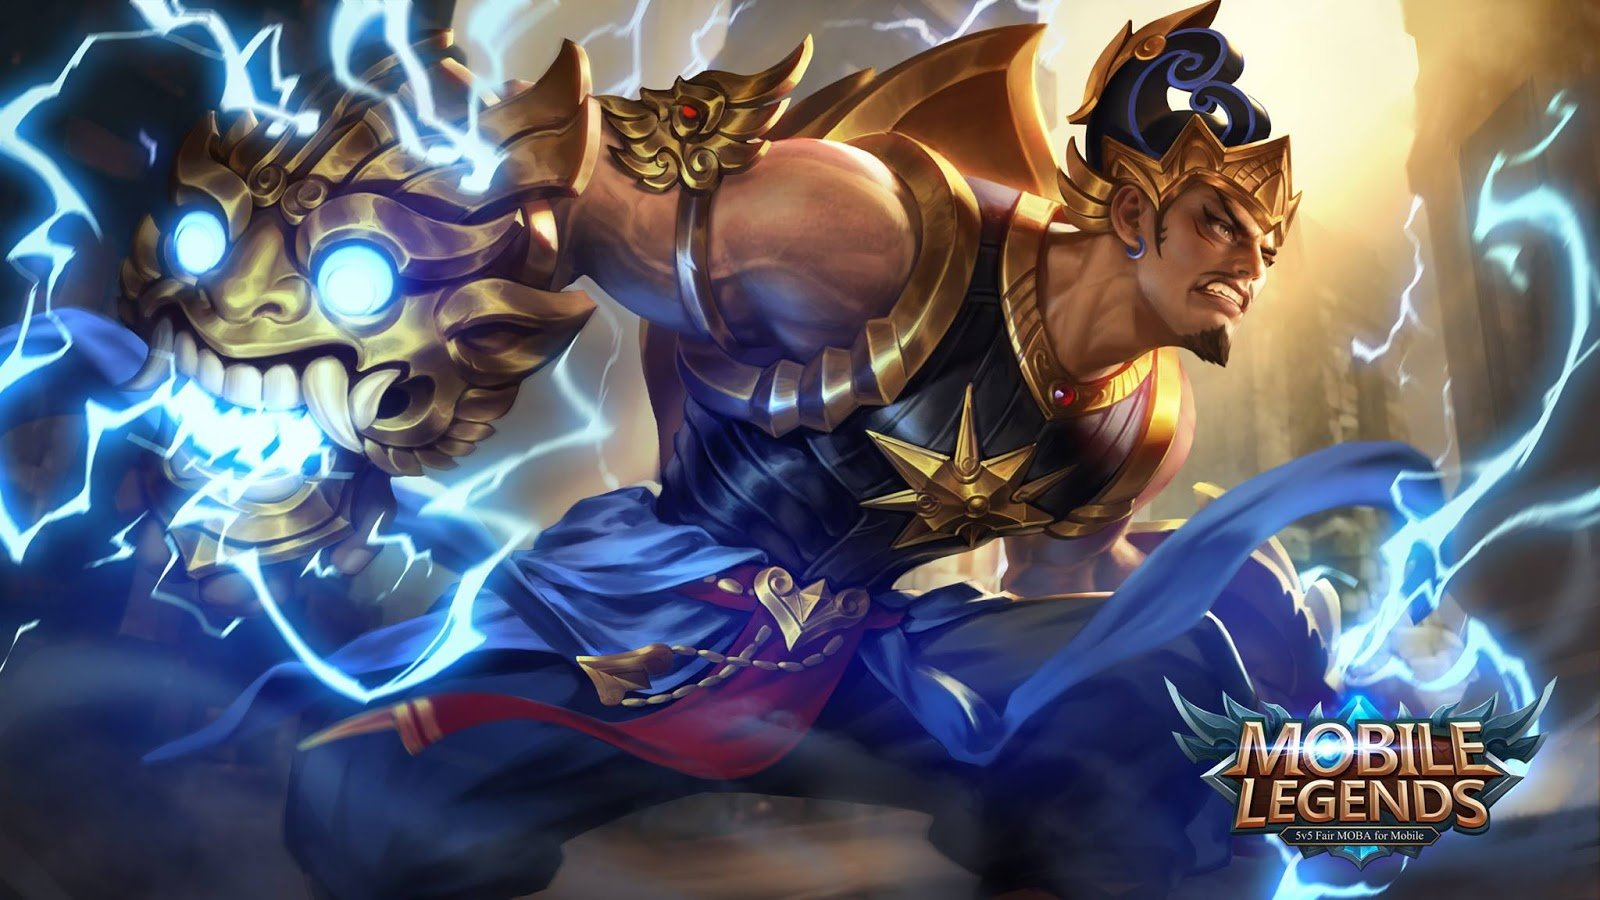 300 Wallpaper Mobile Legend Full HD Untuk HP Dan Komputermu